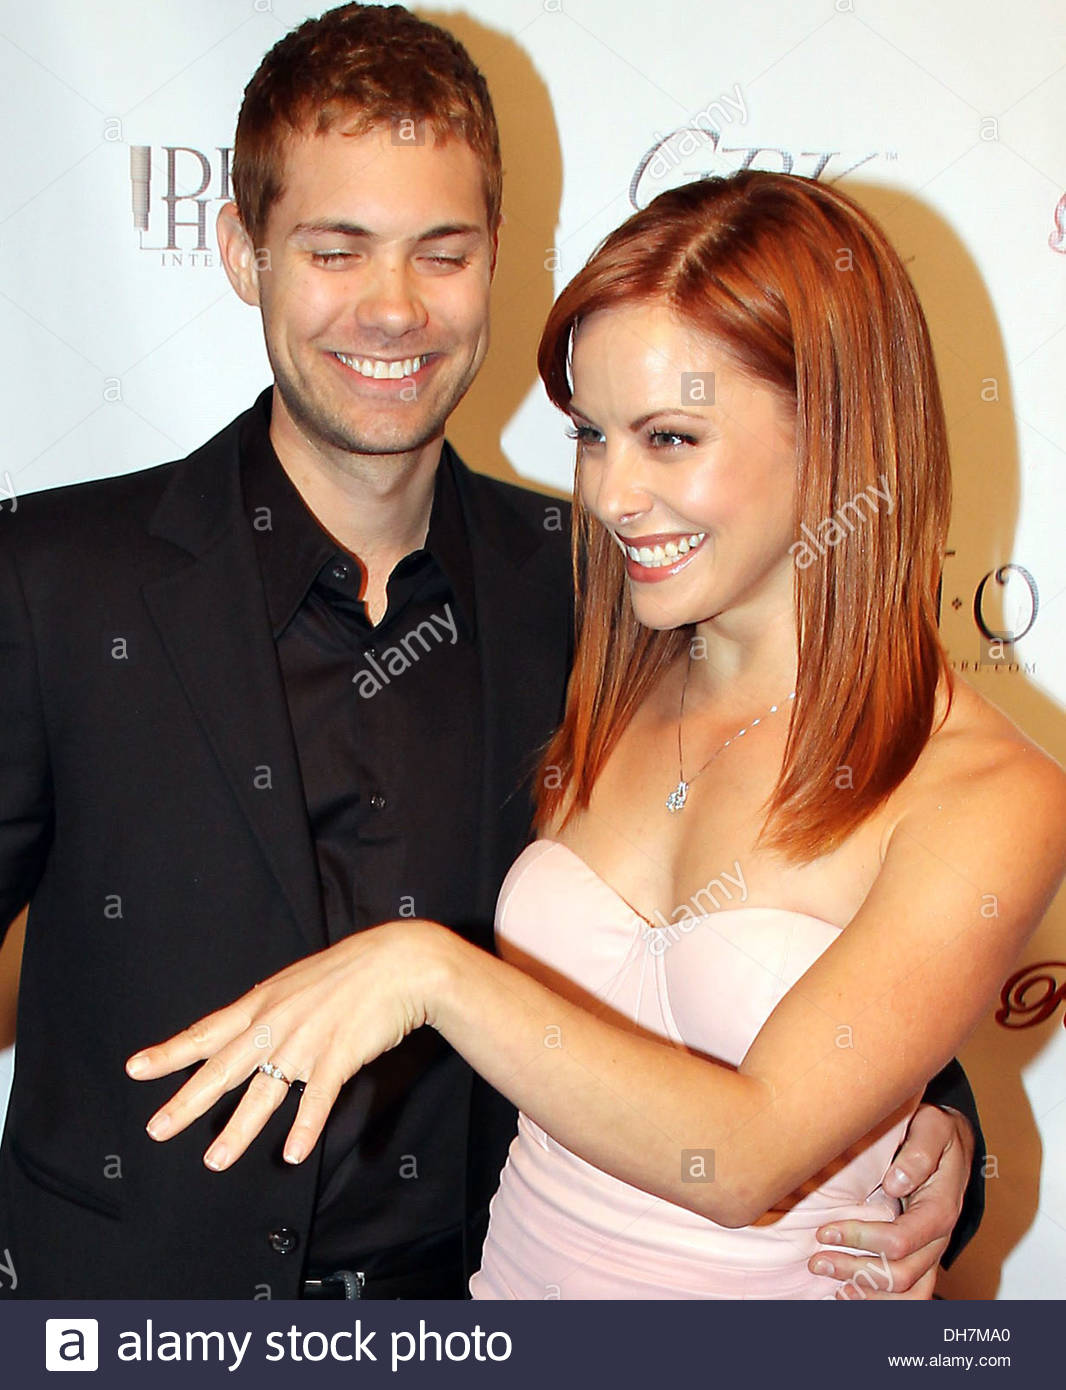 How long have drew seeley and amy paffrath been dating